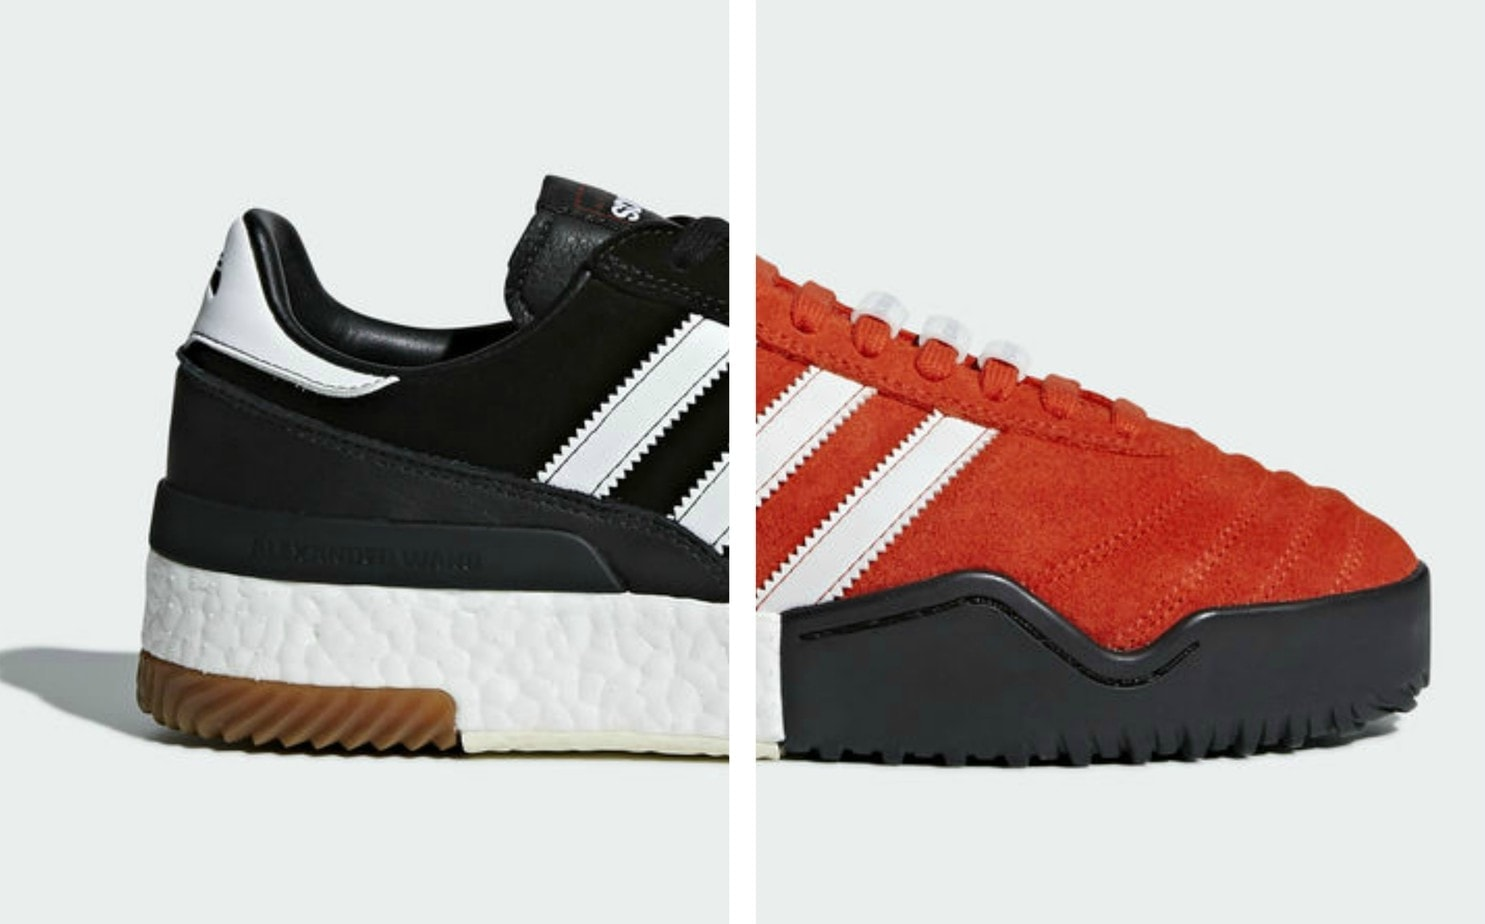 alexander wang x adidas soccer shoe release info justfreshkicks. Black Bedroom Furniture Sets. Home Design Ideas